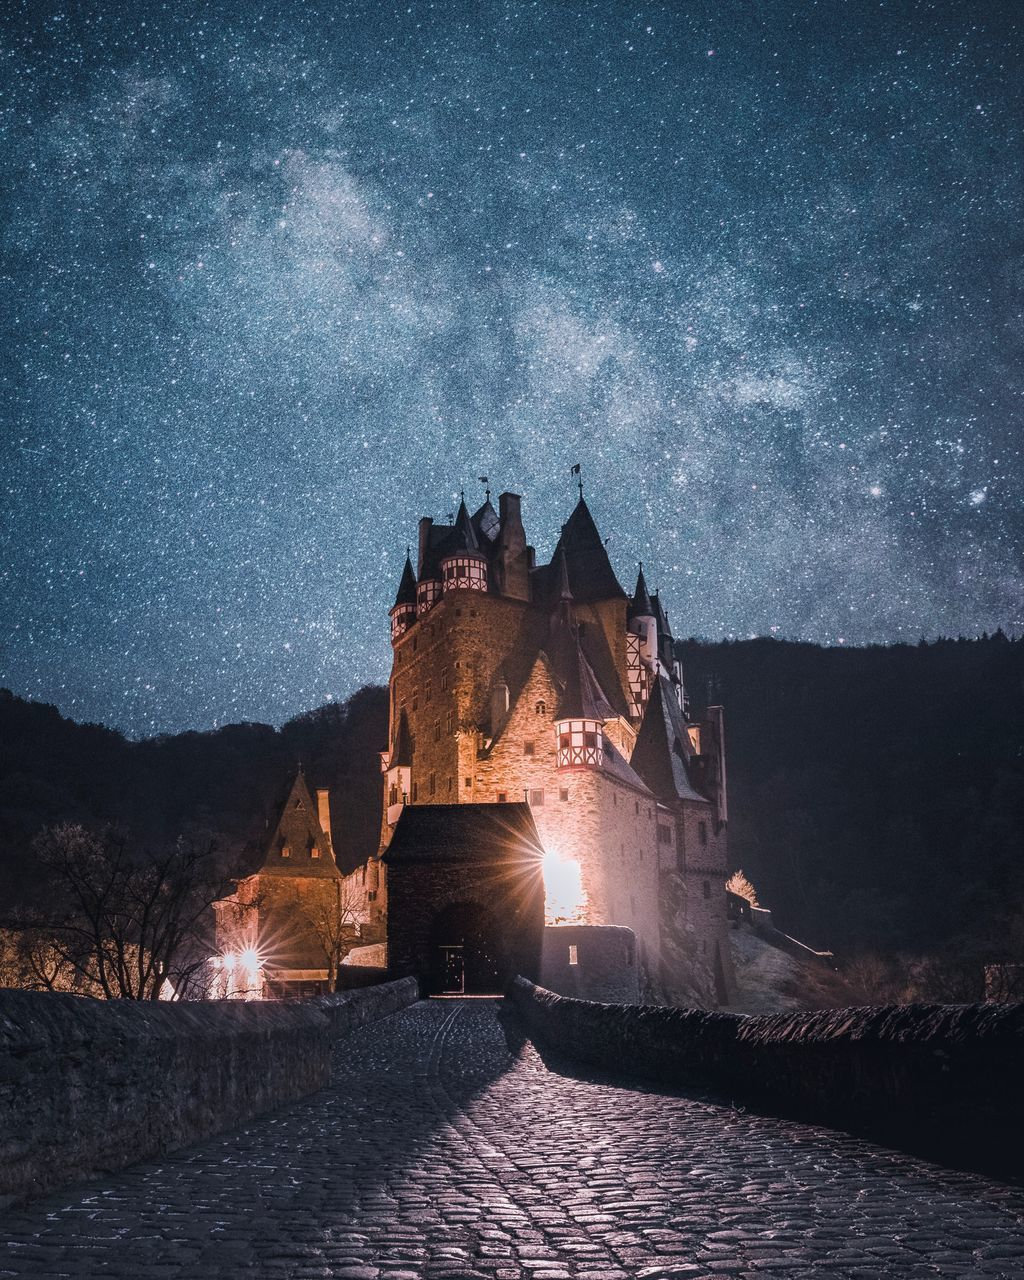 night, architecture, star - space, astronomy, sky, building exterior, space, illuminated, nature, built structure, building, no people, scenics - nature, galaxy, water, star field, star, dusk, tree, outdoors